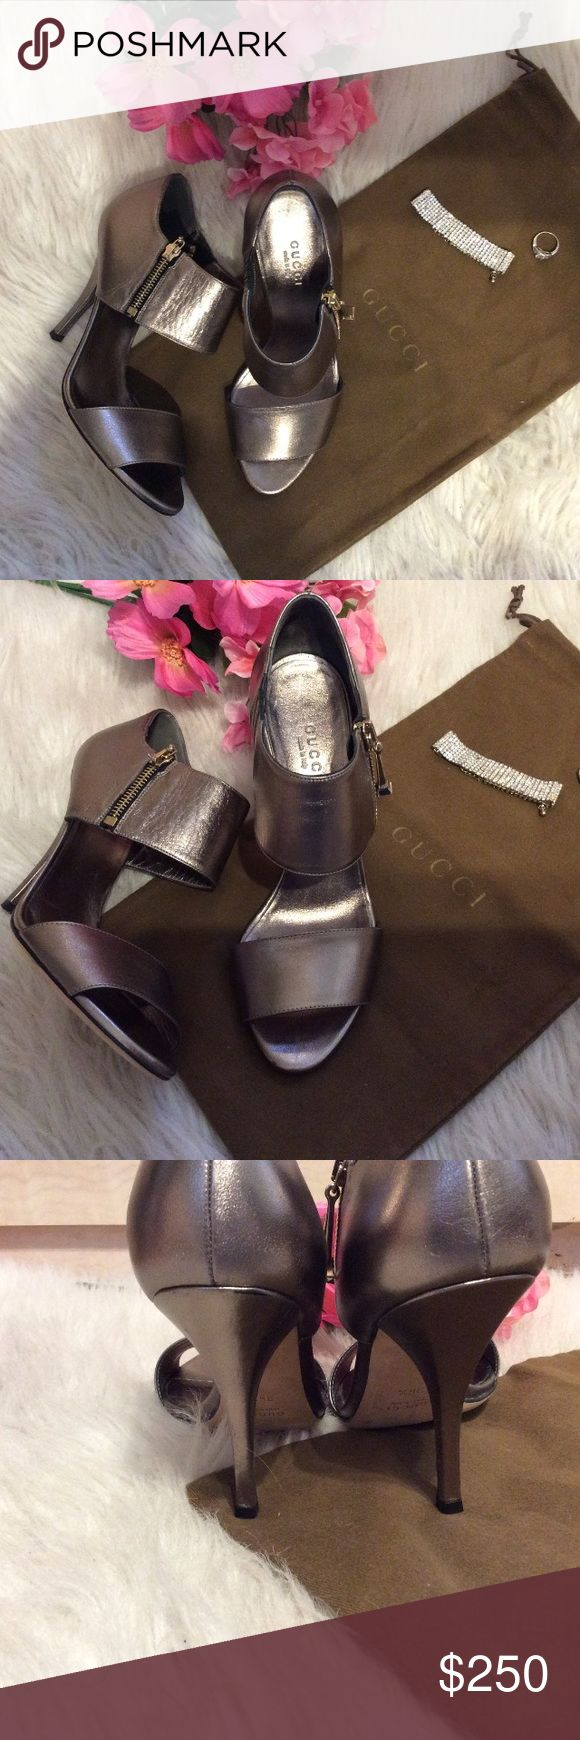 """Authentic Gucci pewter sandals Authentic Gucci leather heeled sandals. Worn once! In like new condition. Comes with Gucci dustbag. 4"""" heel. Zippers on side for closure. Bundle and save 15%. Size 36 1/2 Gucci Shoes Sandals"""